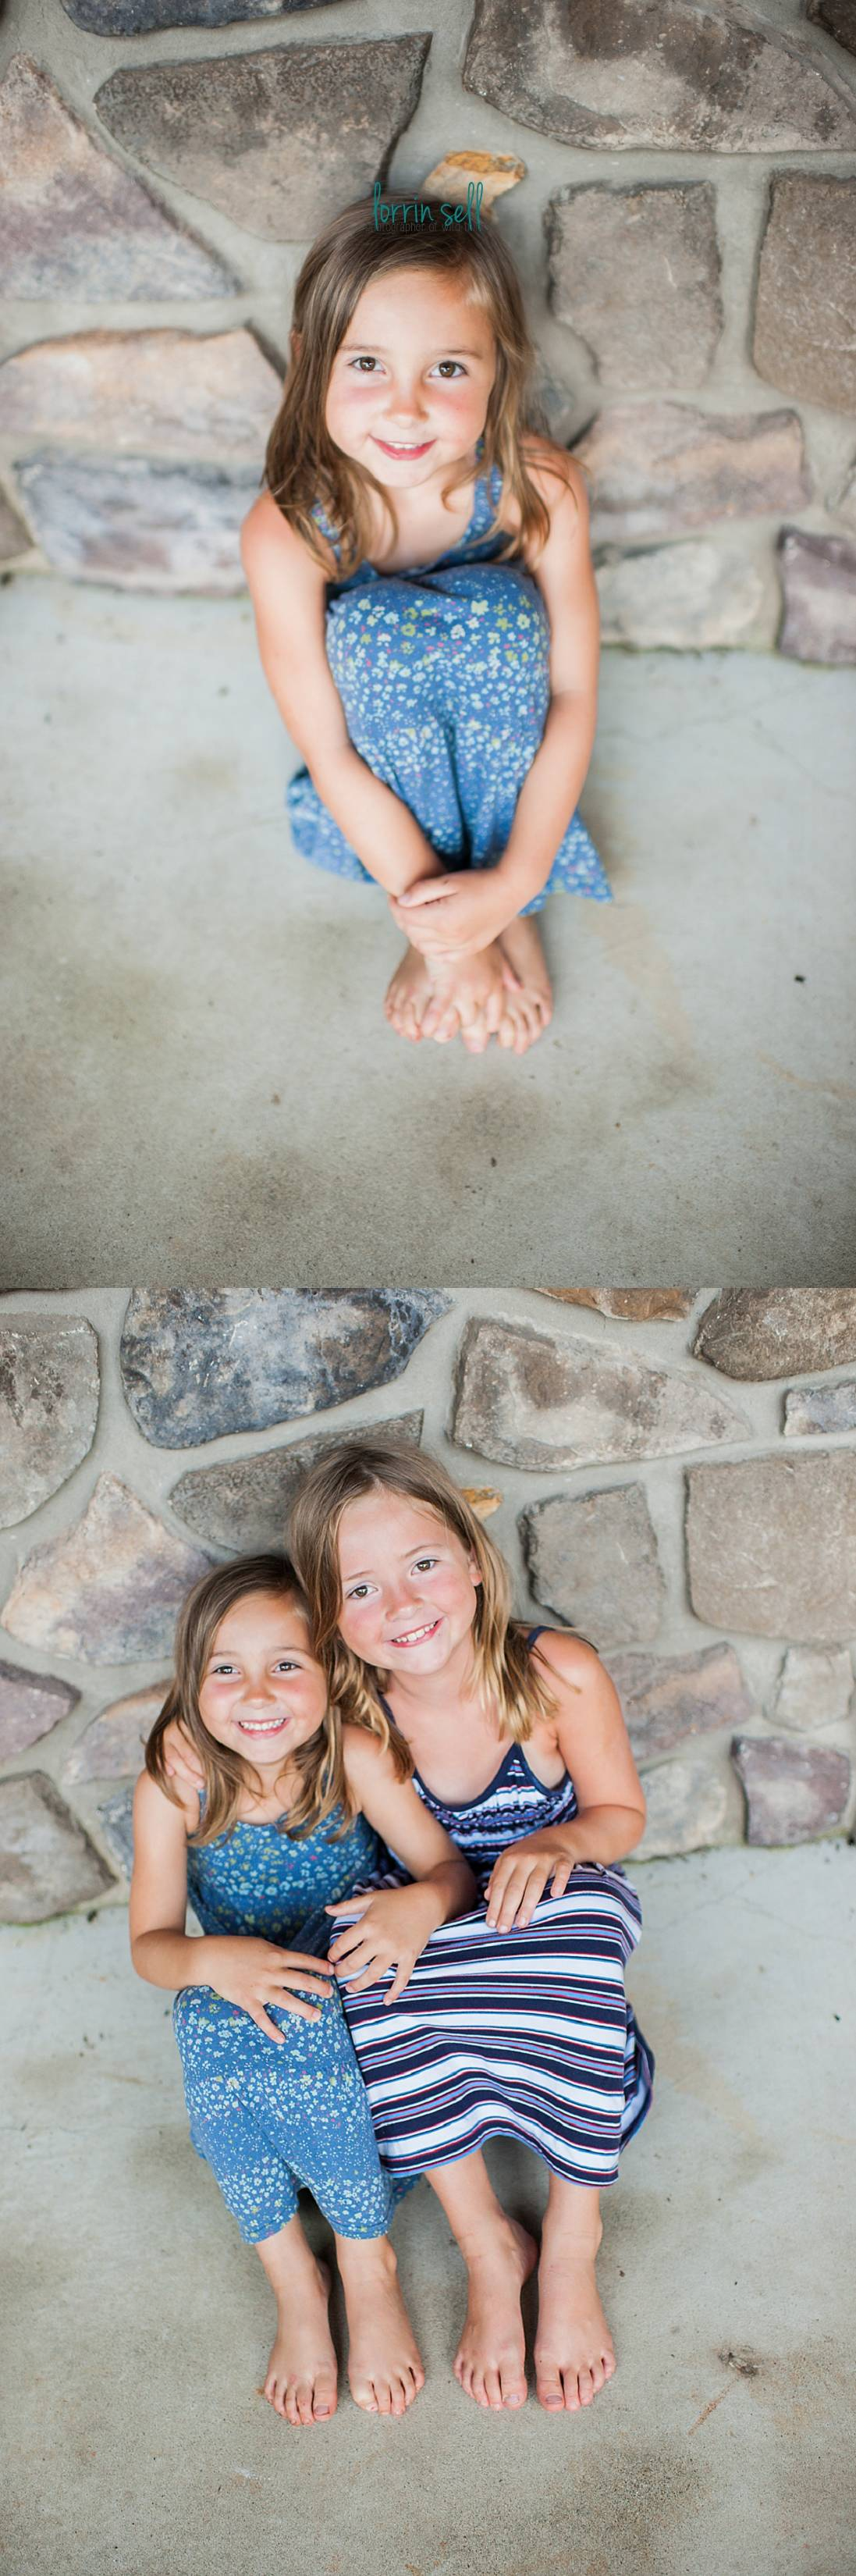 5 tips for capturing genuine smiles when photographing your wild things!